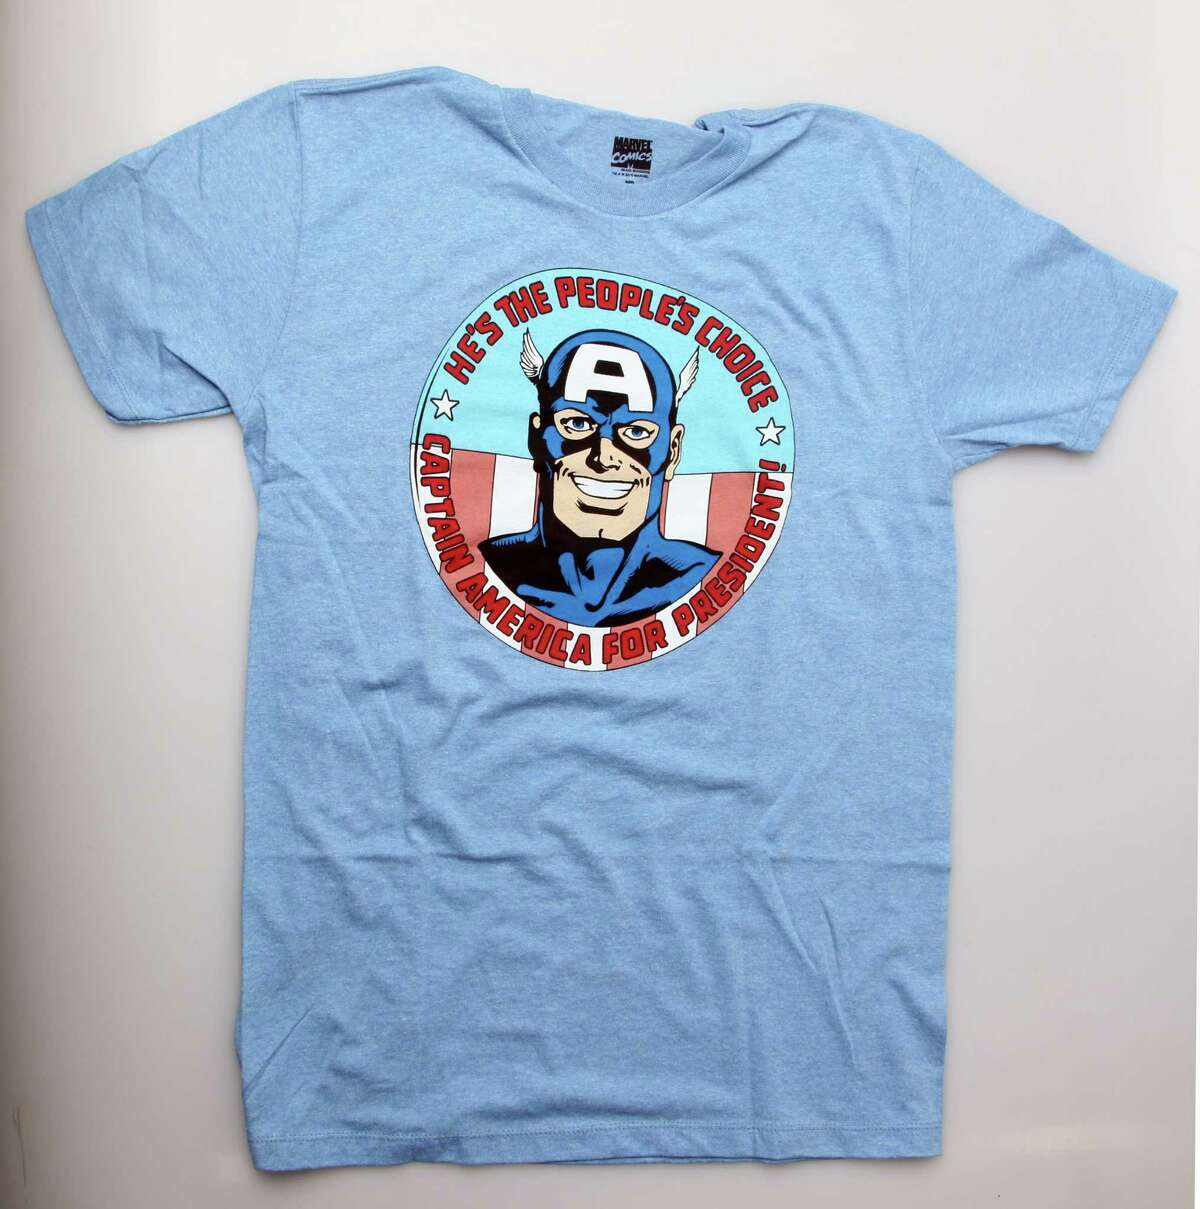 With a name like Captain America, president seems to be the next logical step.